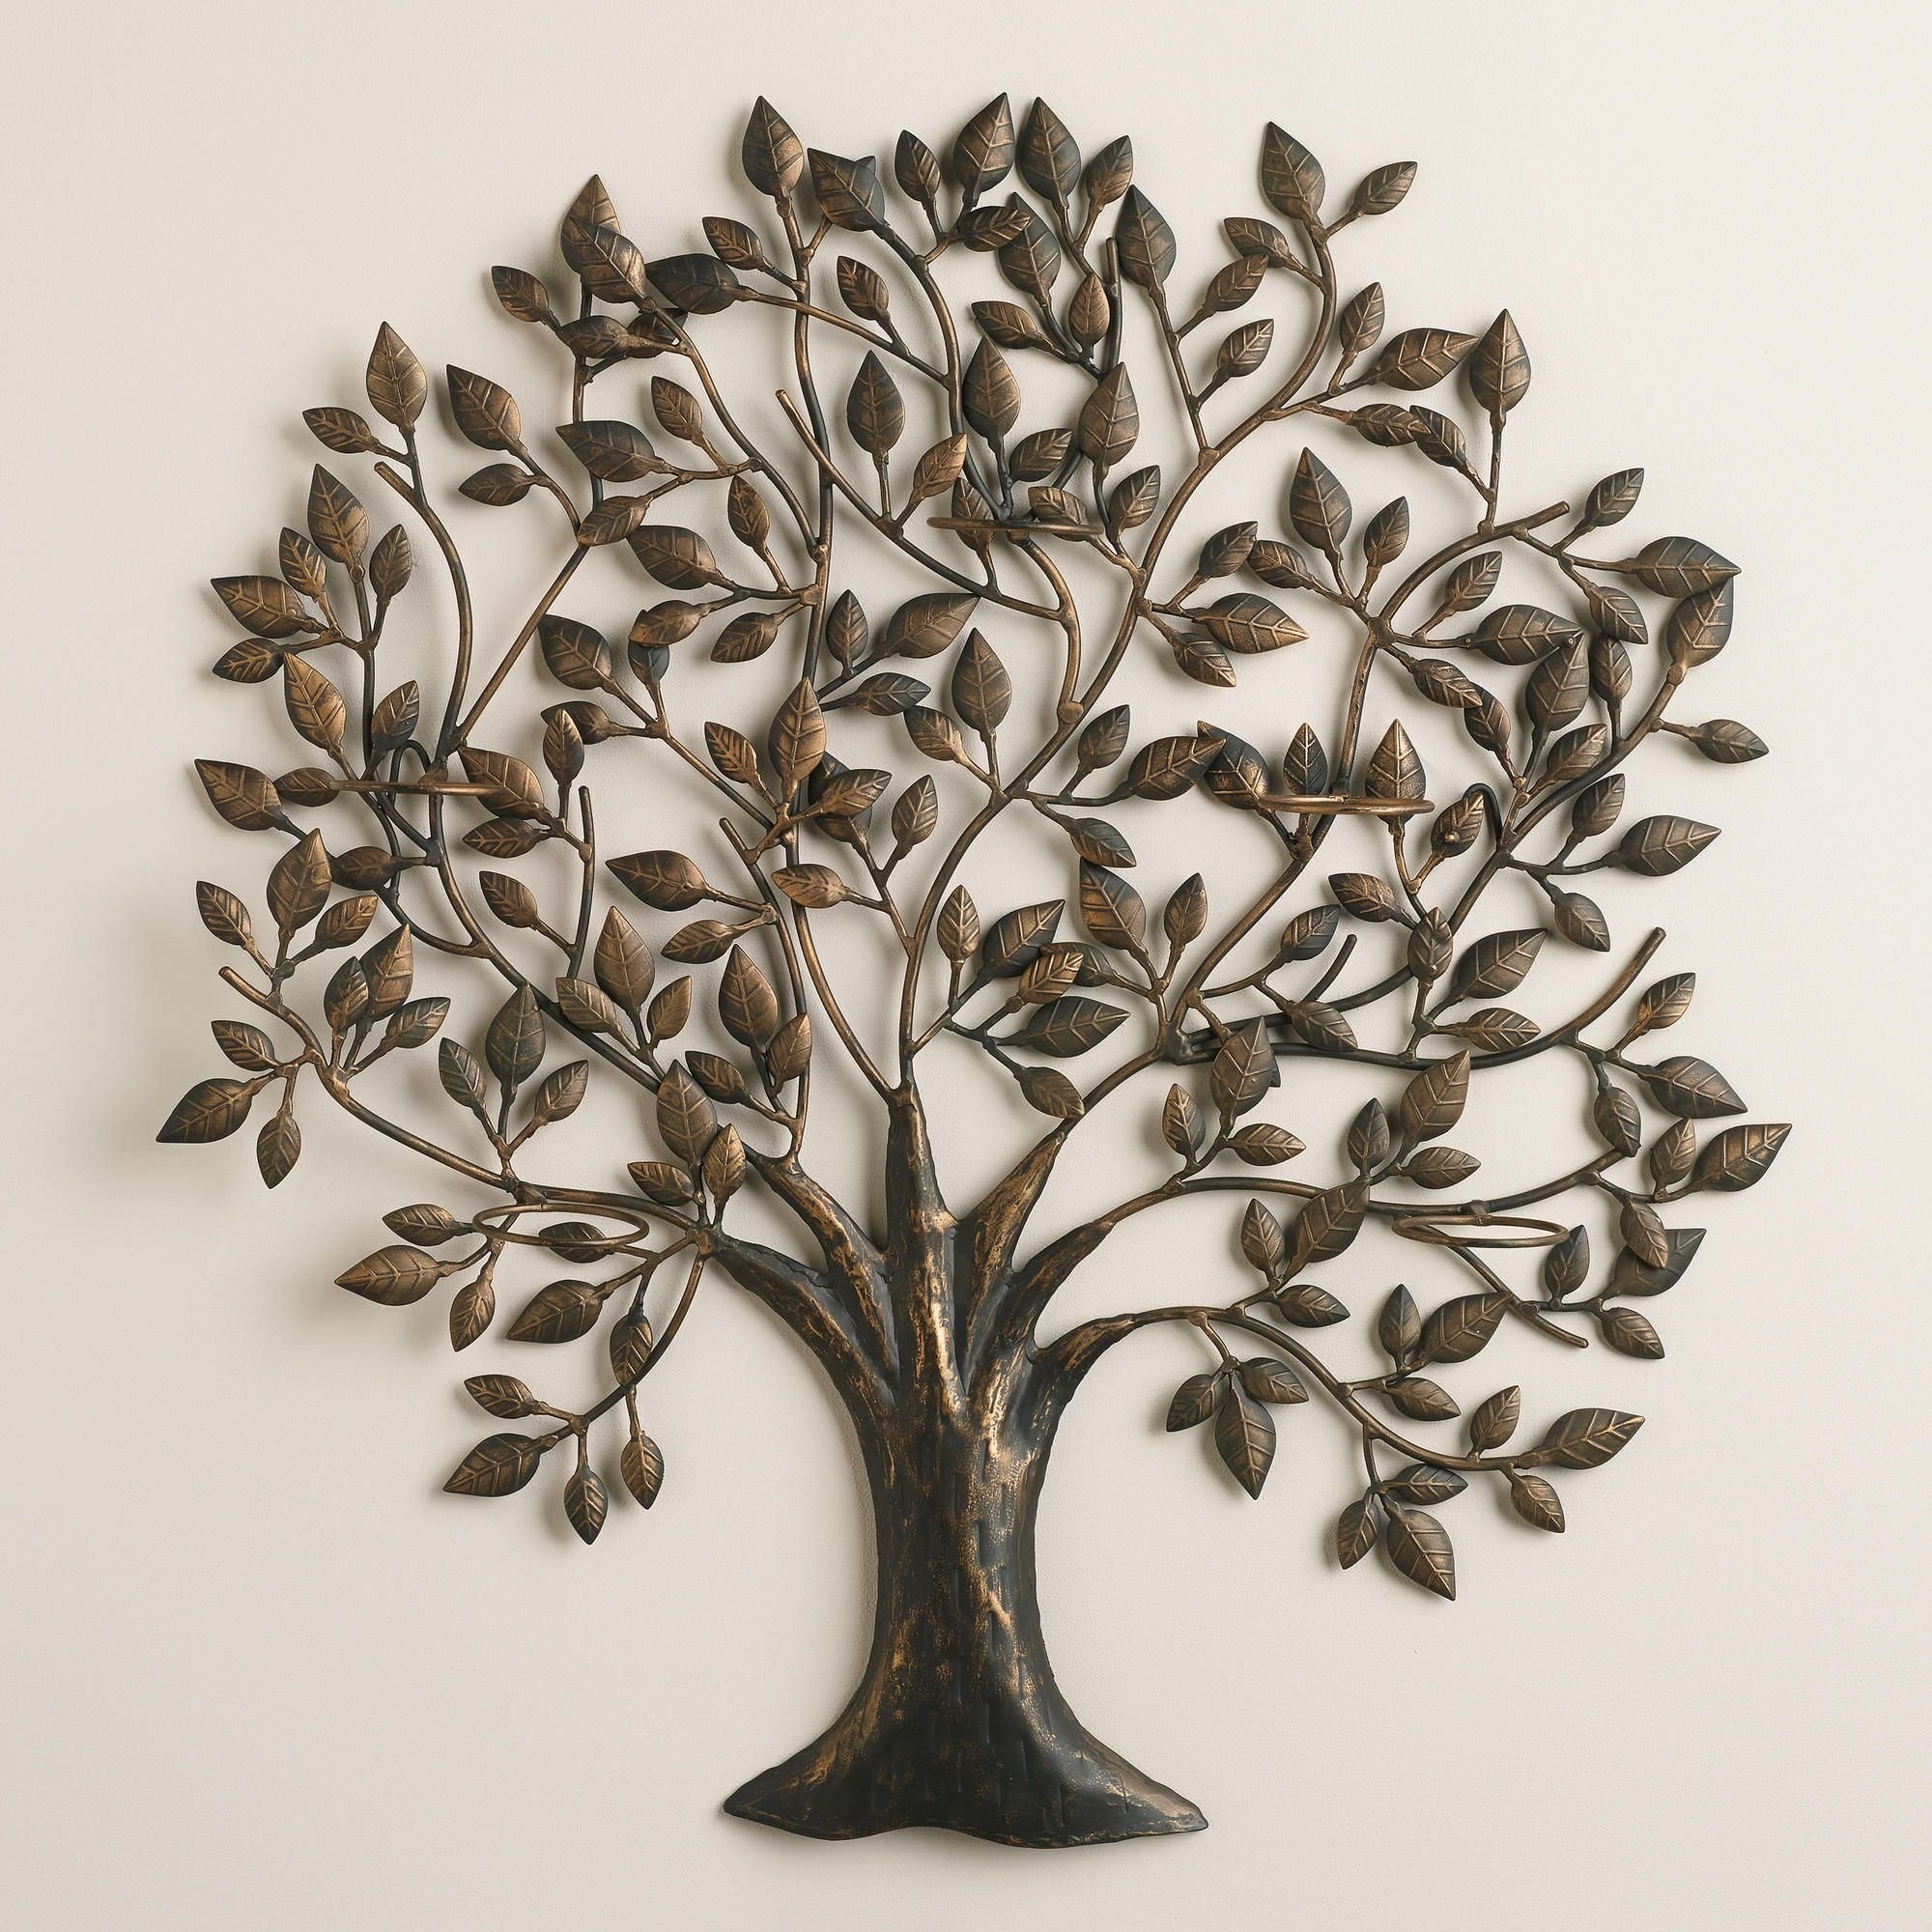 Tree Of Life Sconce Candleholder Cost Plus World Market Metal Tree Wall Art Metal Tree Rustic Wall Sconces